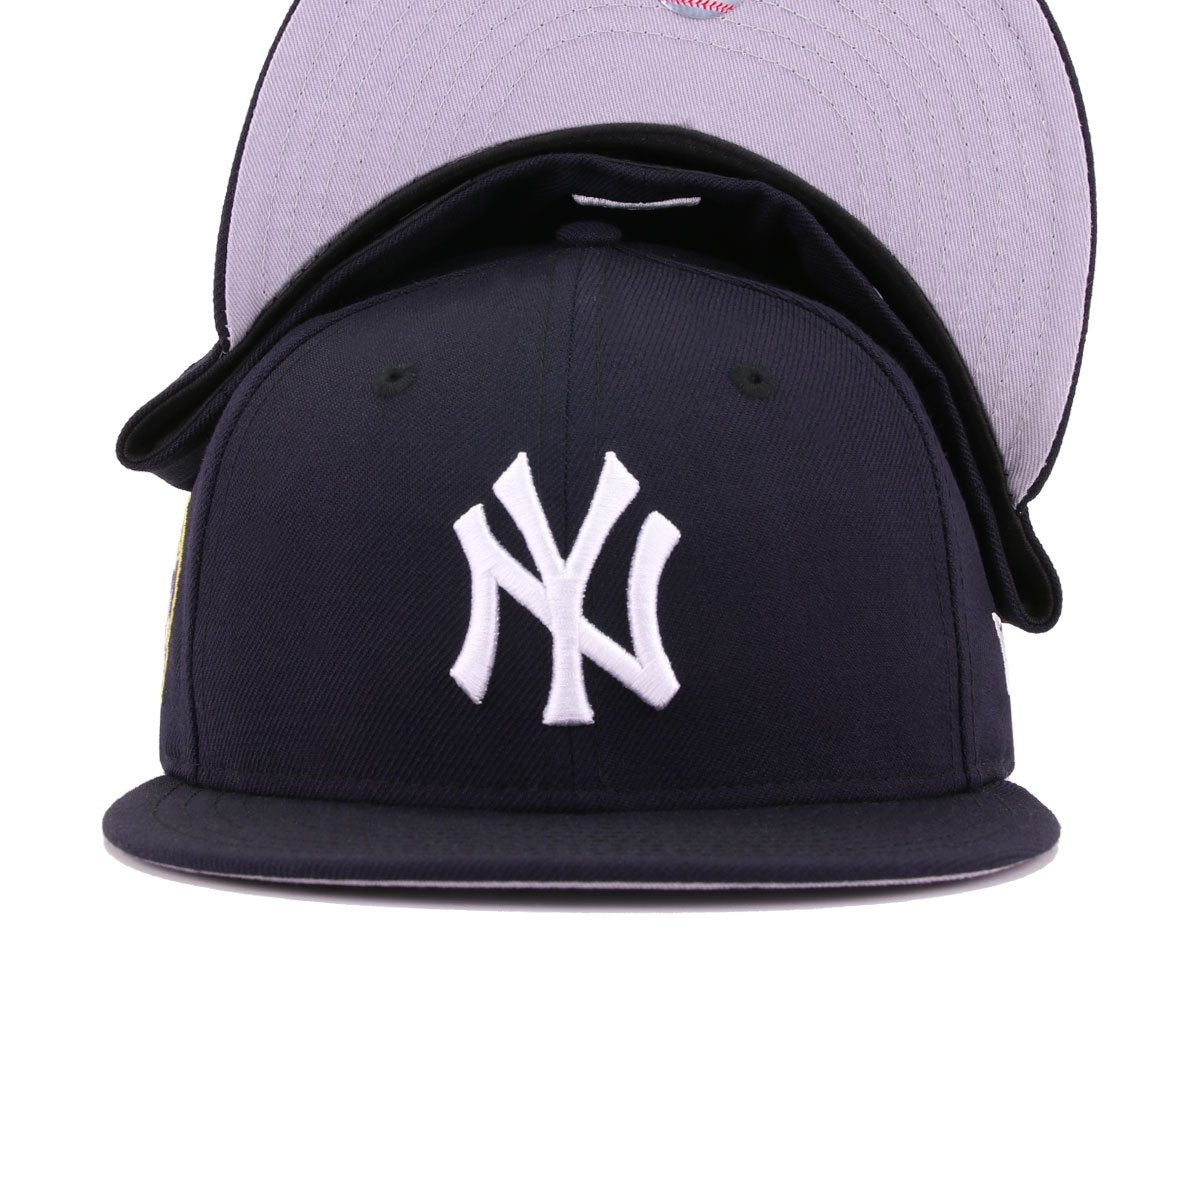 New York Yankees x FDNY Navy New Era 59Fifty Fitted